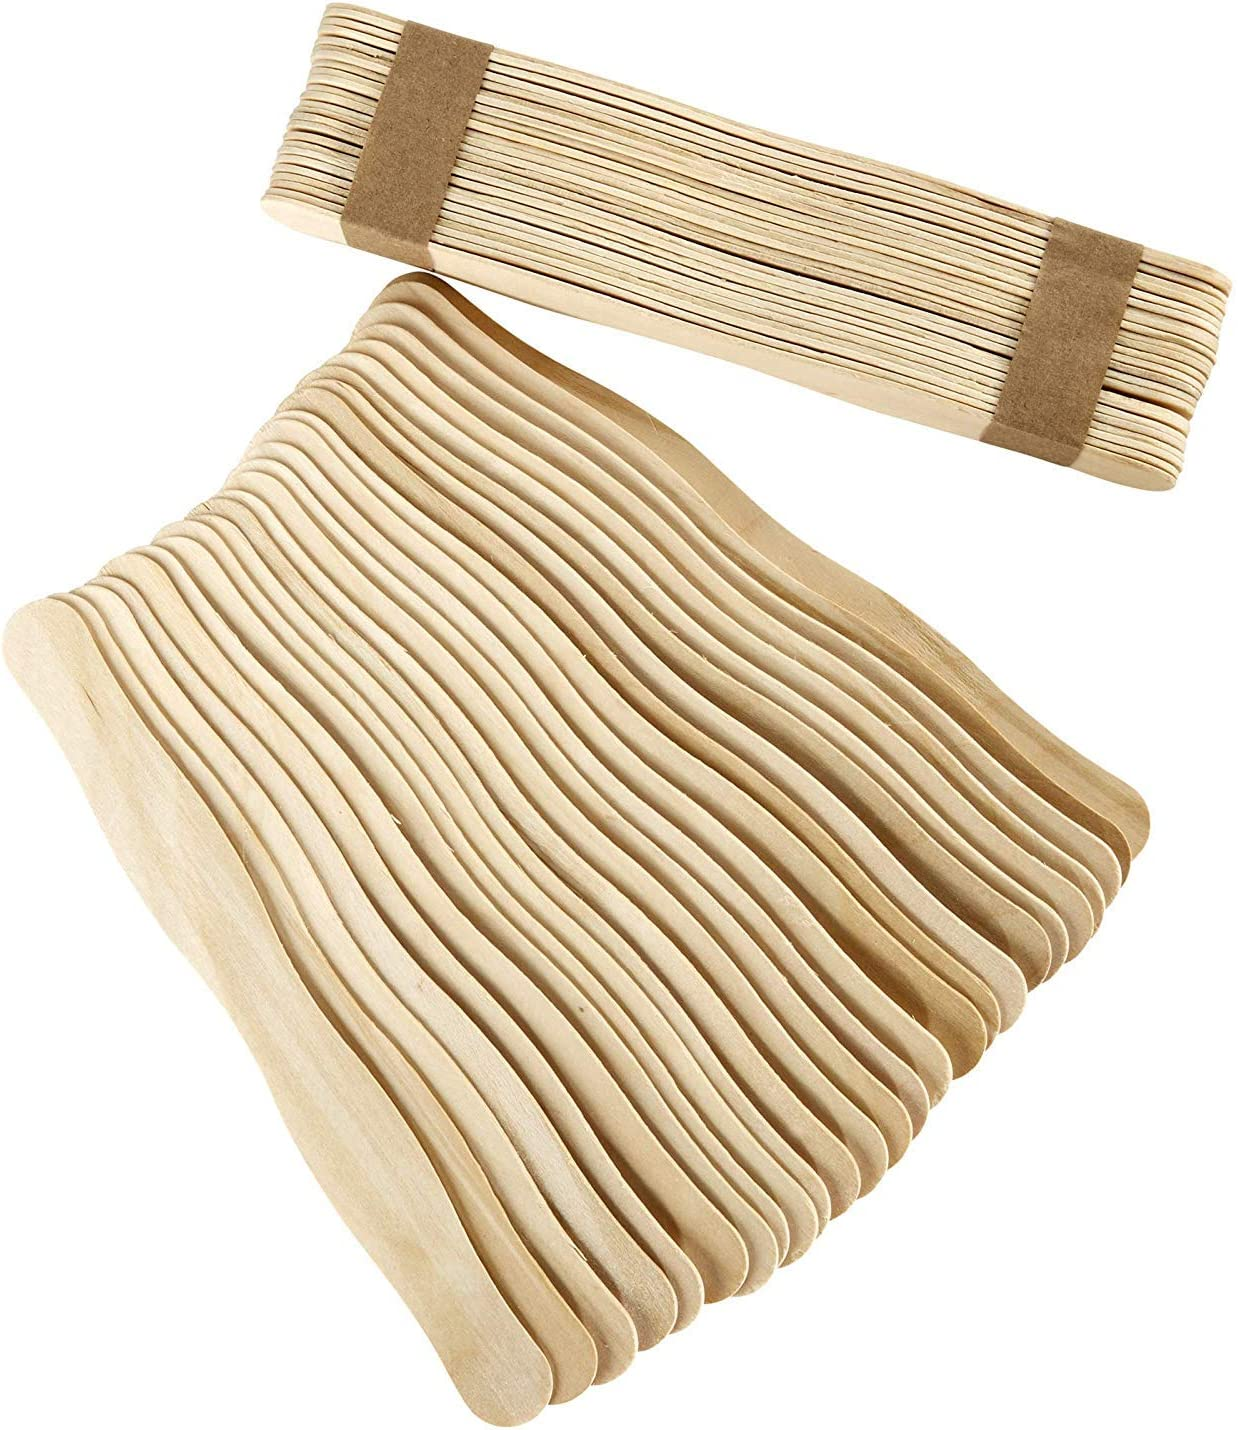 Wedding Fan Handles Craft Sticks 300pc Jumbo 8 Popsicles Great for Crafts Long Wooden /& Wavy Bulk Tongue Depressors Paint Sticks by Fedmax.